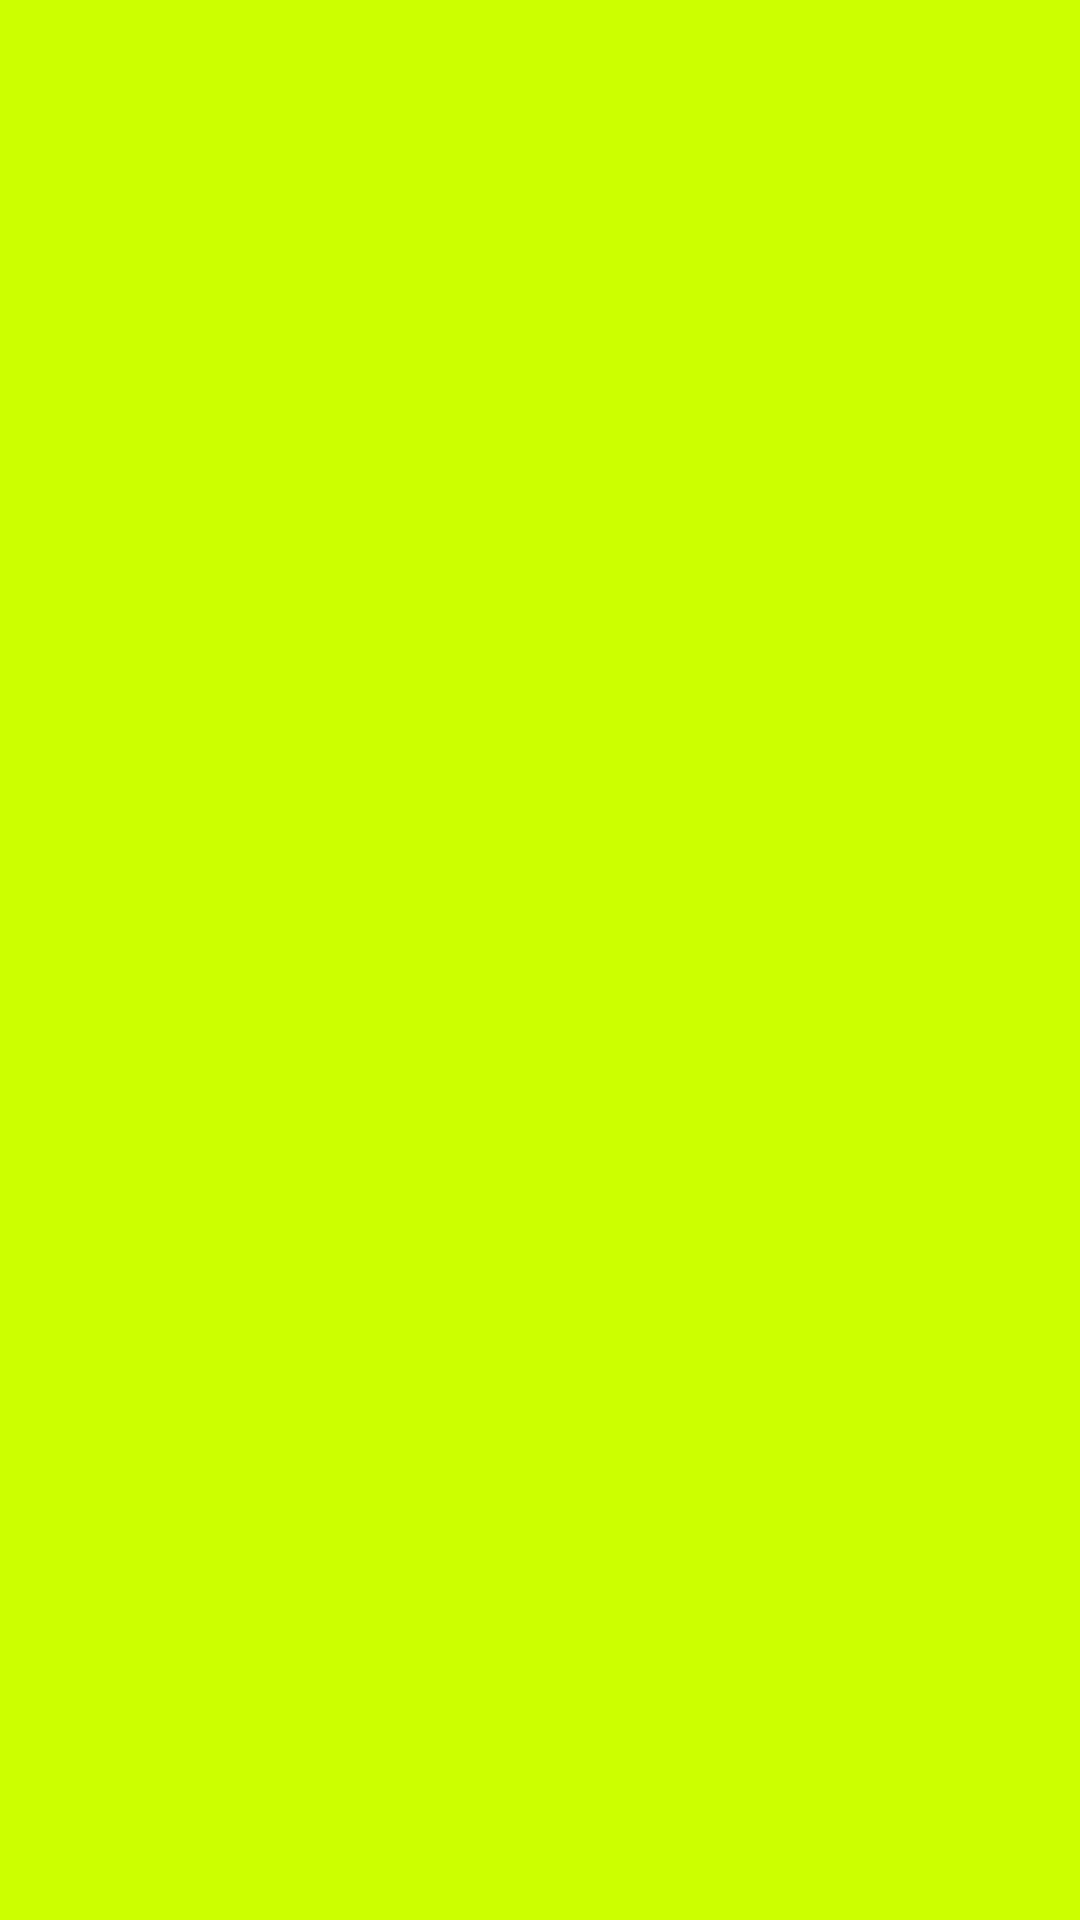 1080x1920 Electric Lime Solid Color Background